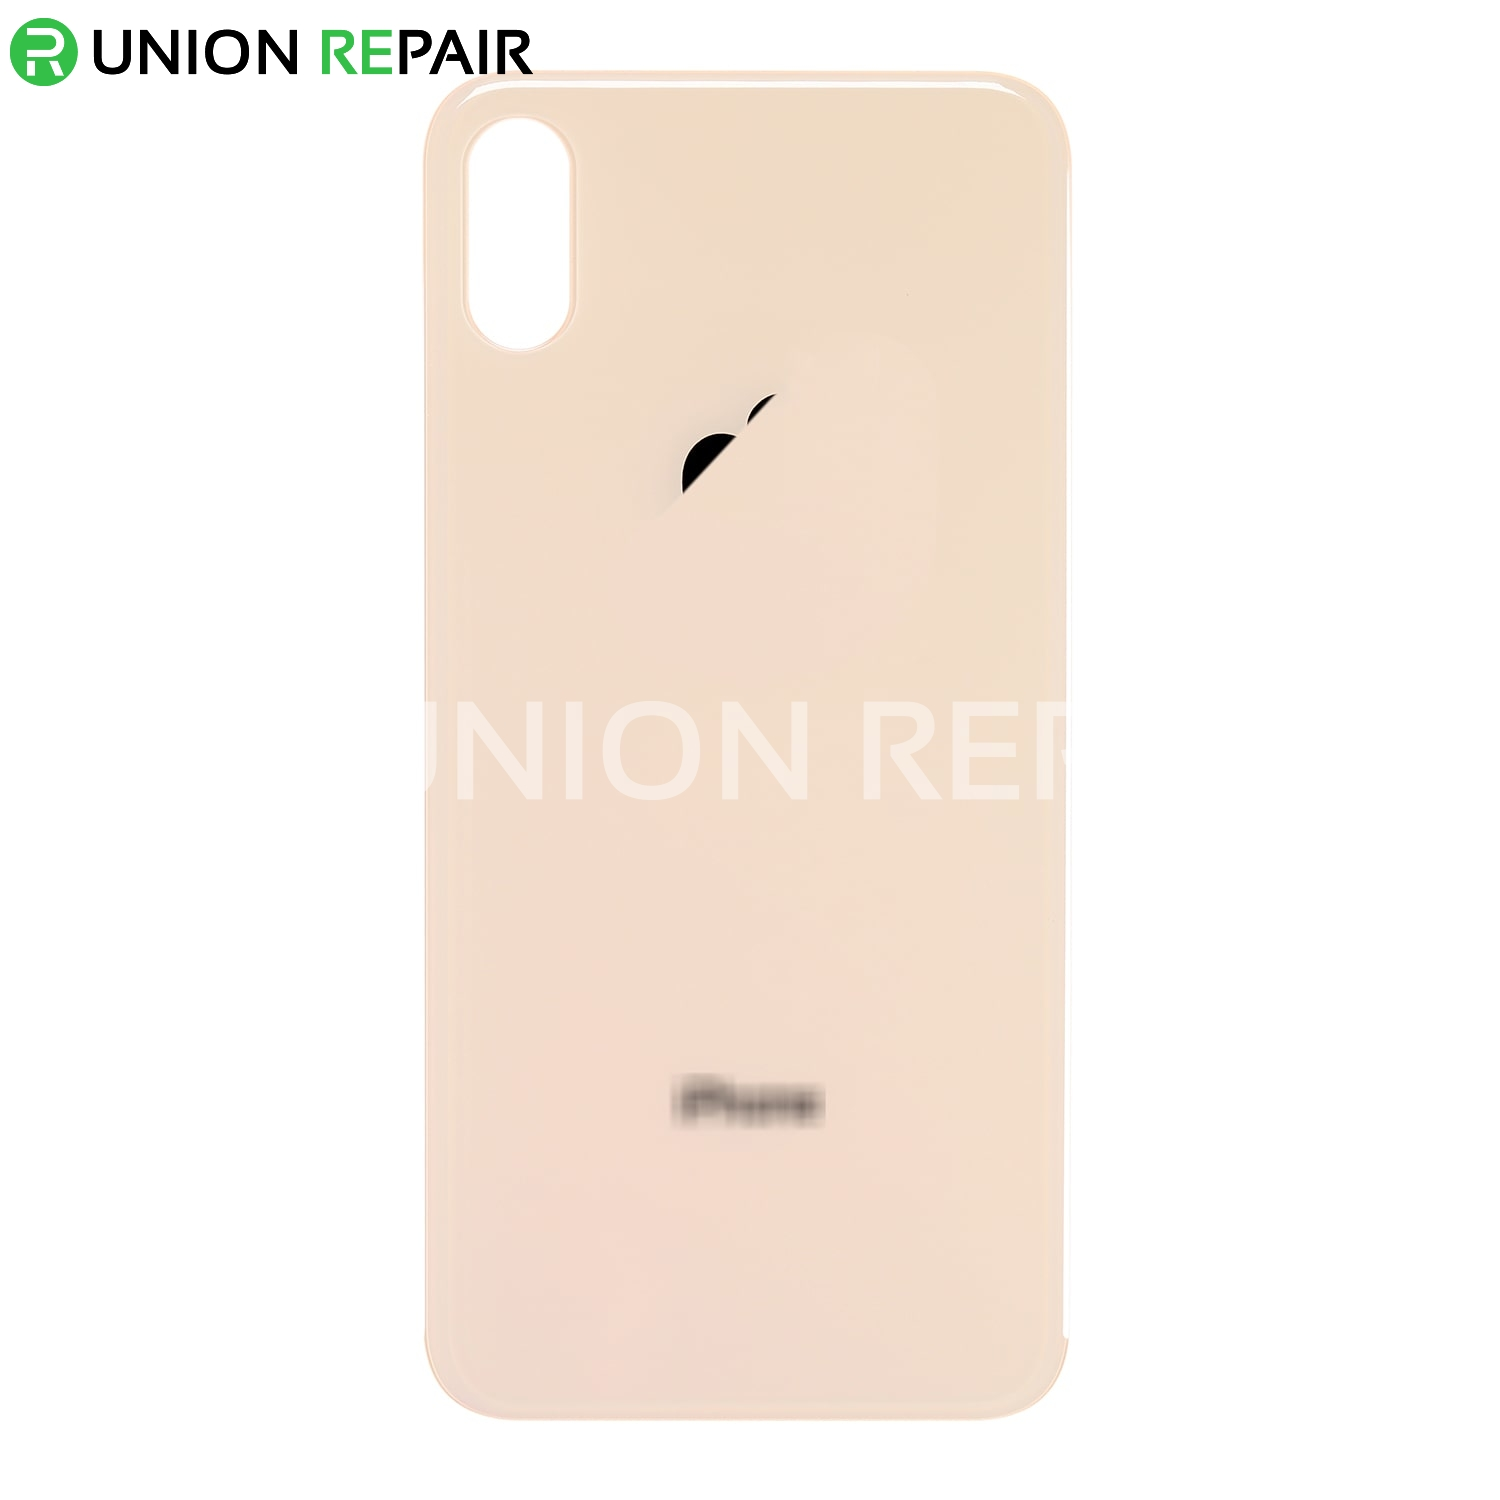 Replacement for iPhone Xs Back Cover - Gold